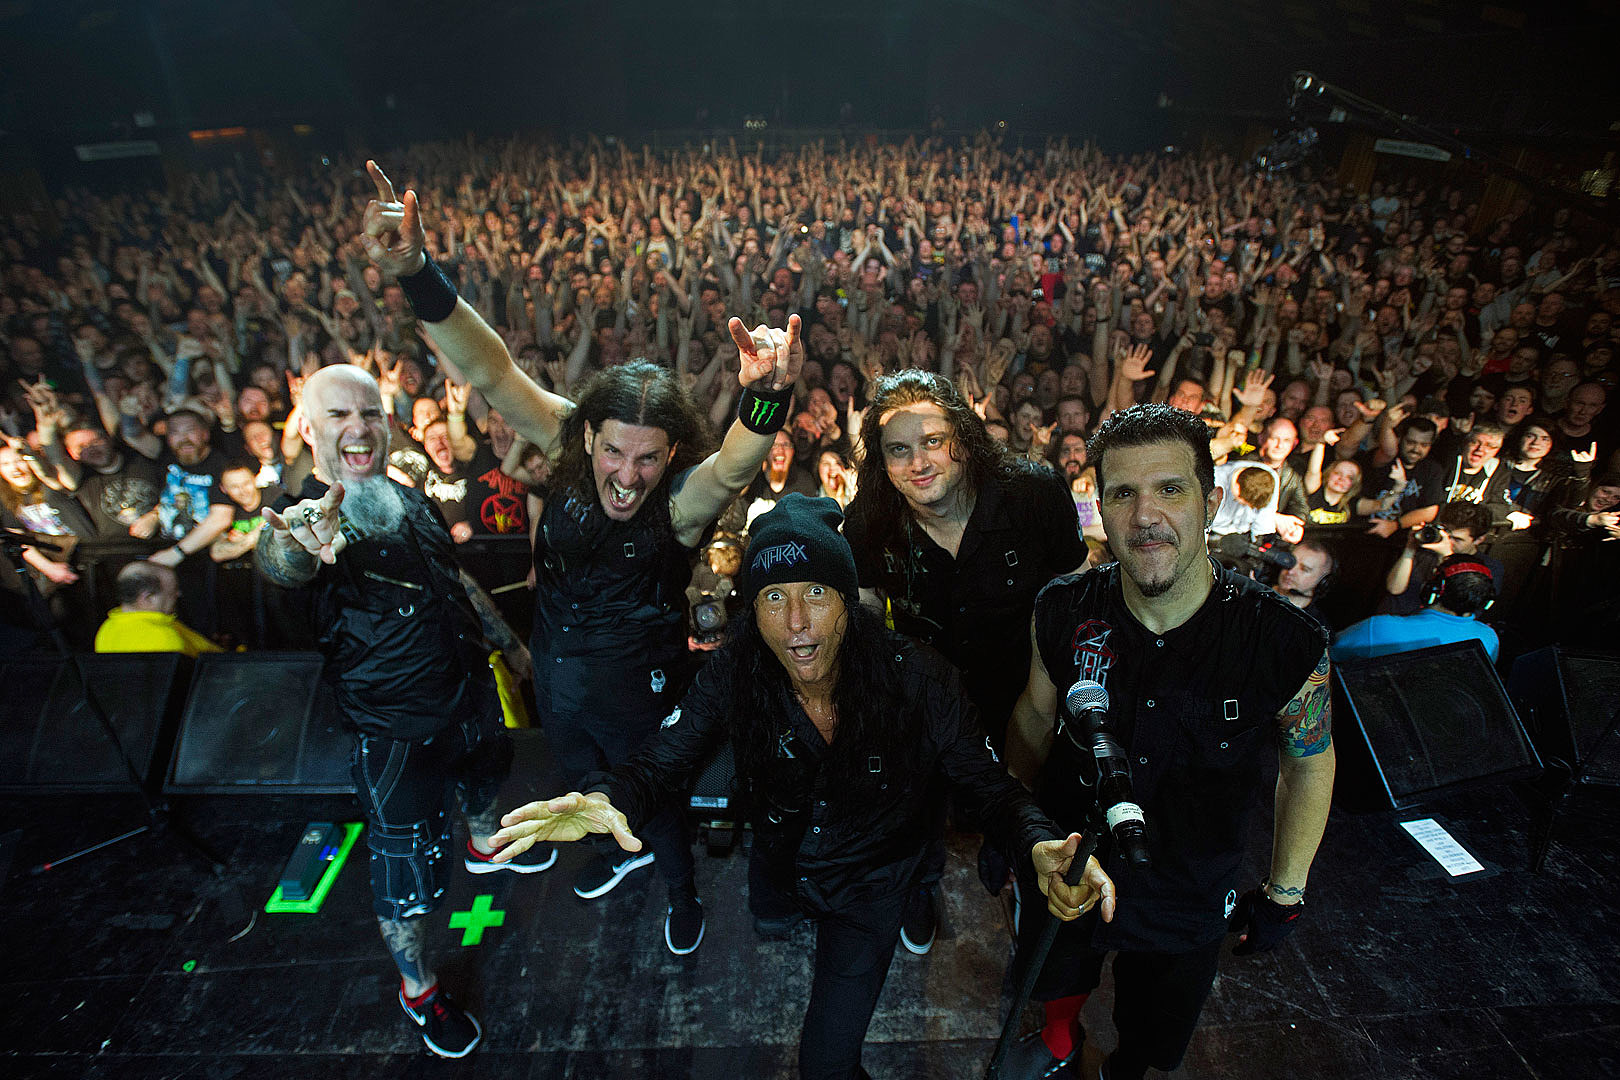 Anthrax Prep 'Kings Among Scotland' Live Concert DVD for Spring 2018 Release